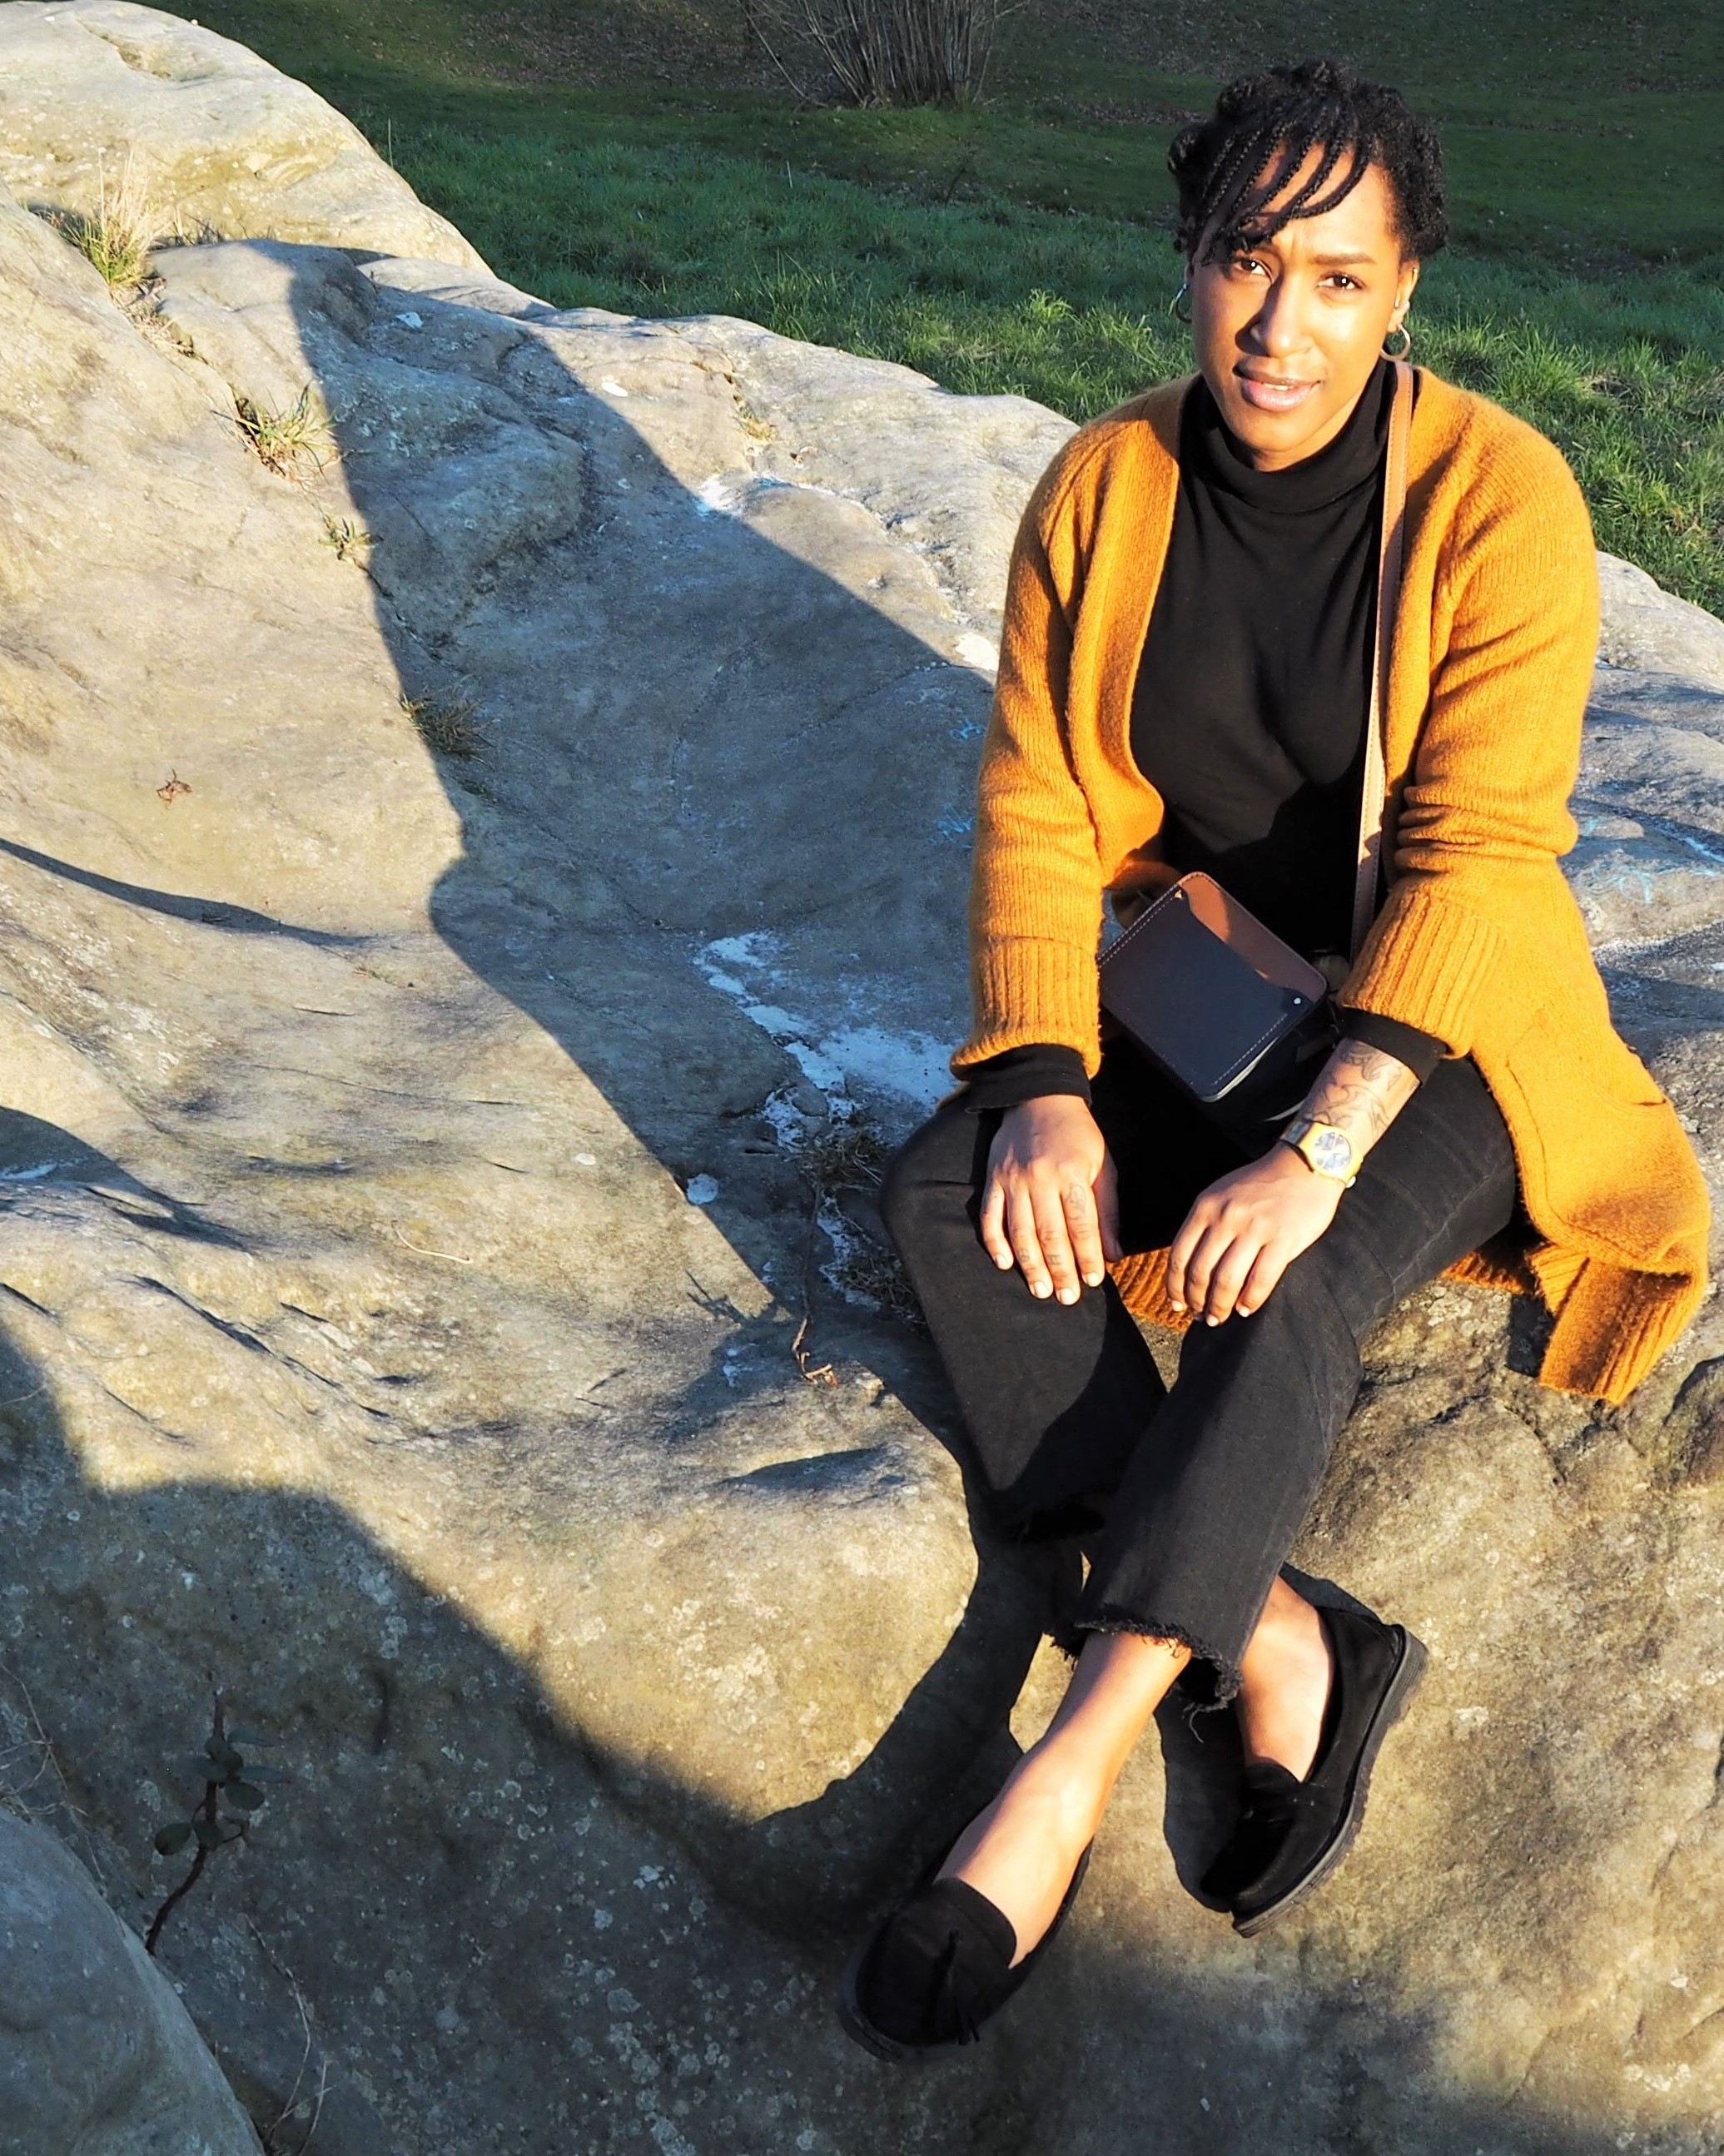 Photo shho taken on a beautiffly large rock in the golden sunset